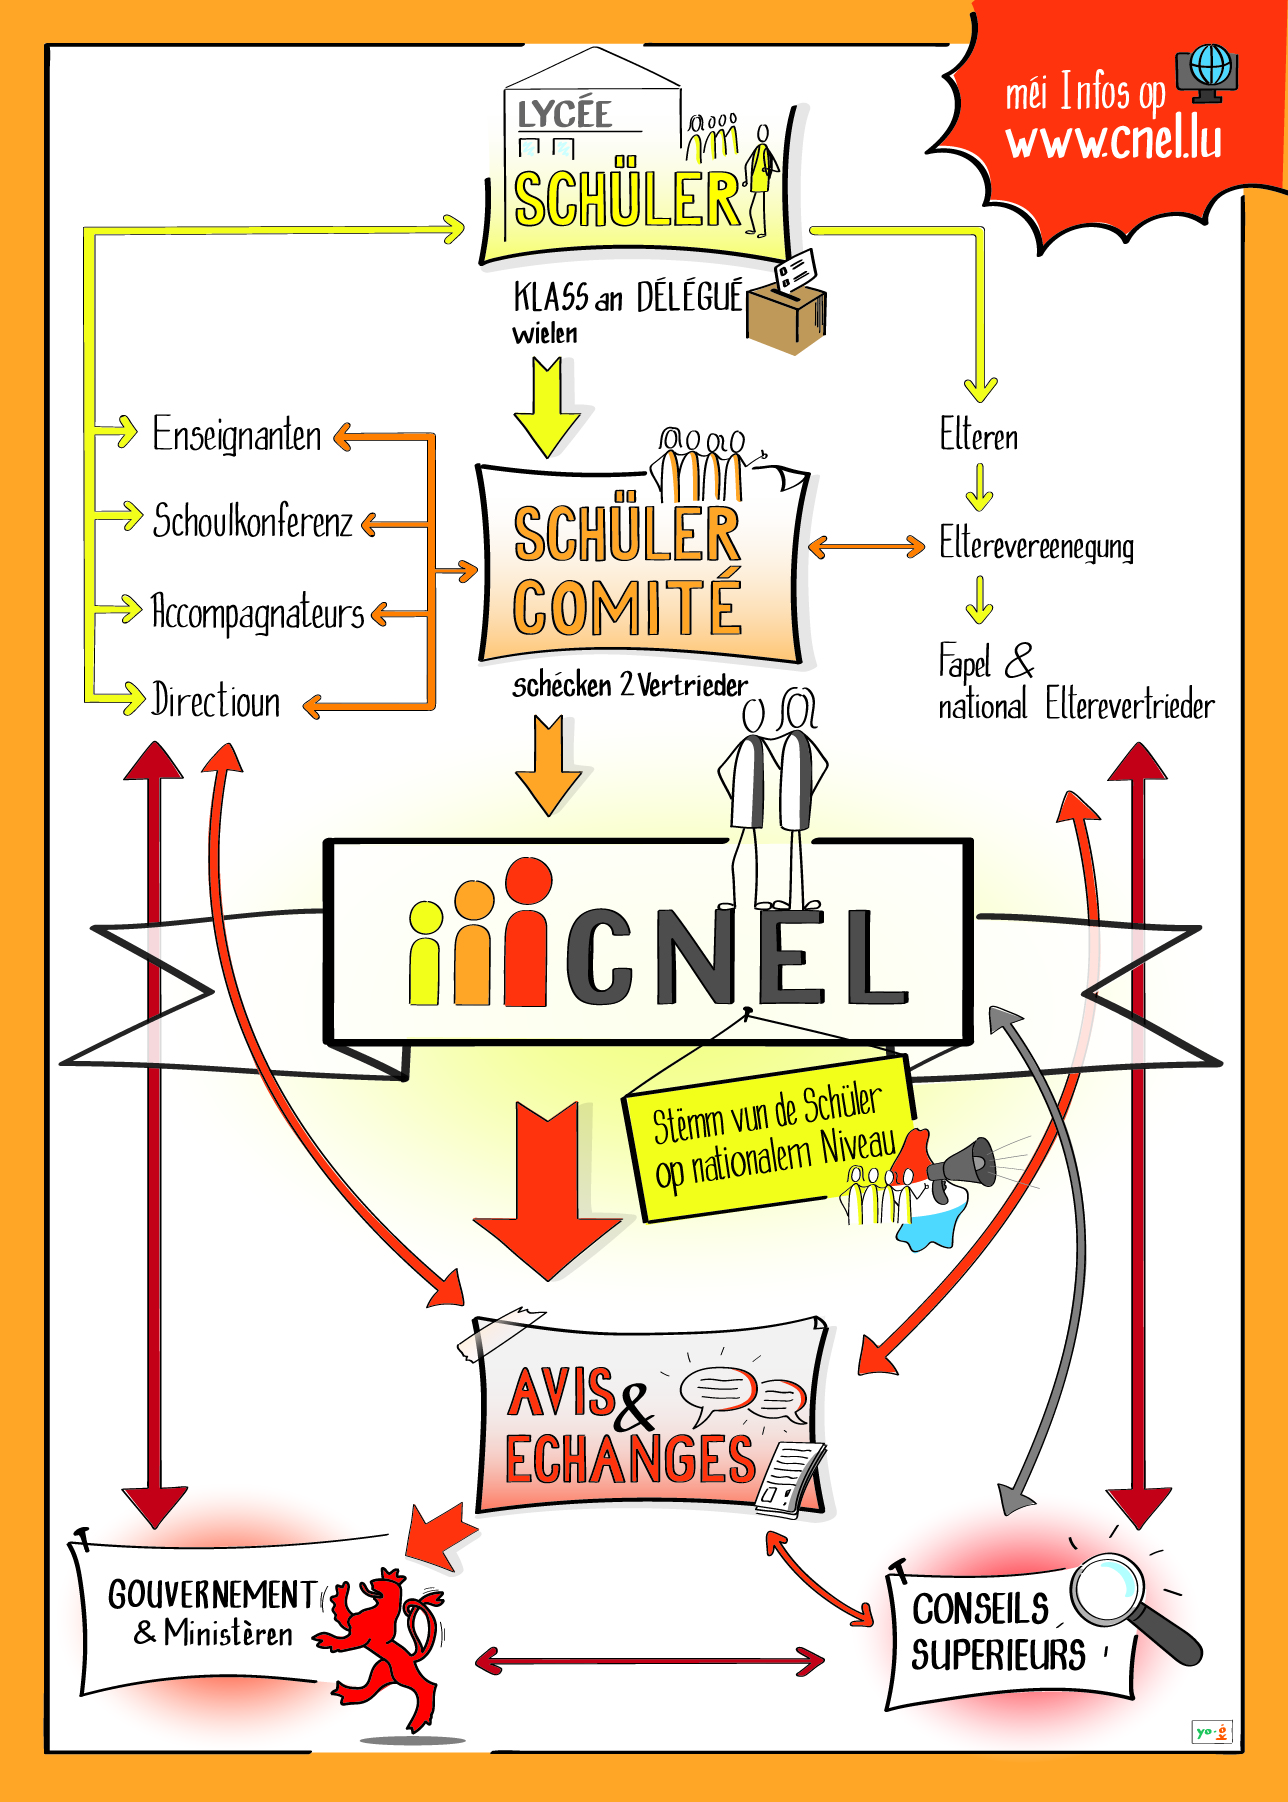 POSTER A3 - CNEL